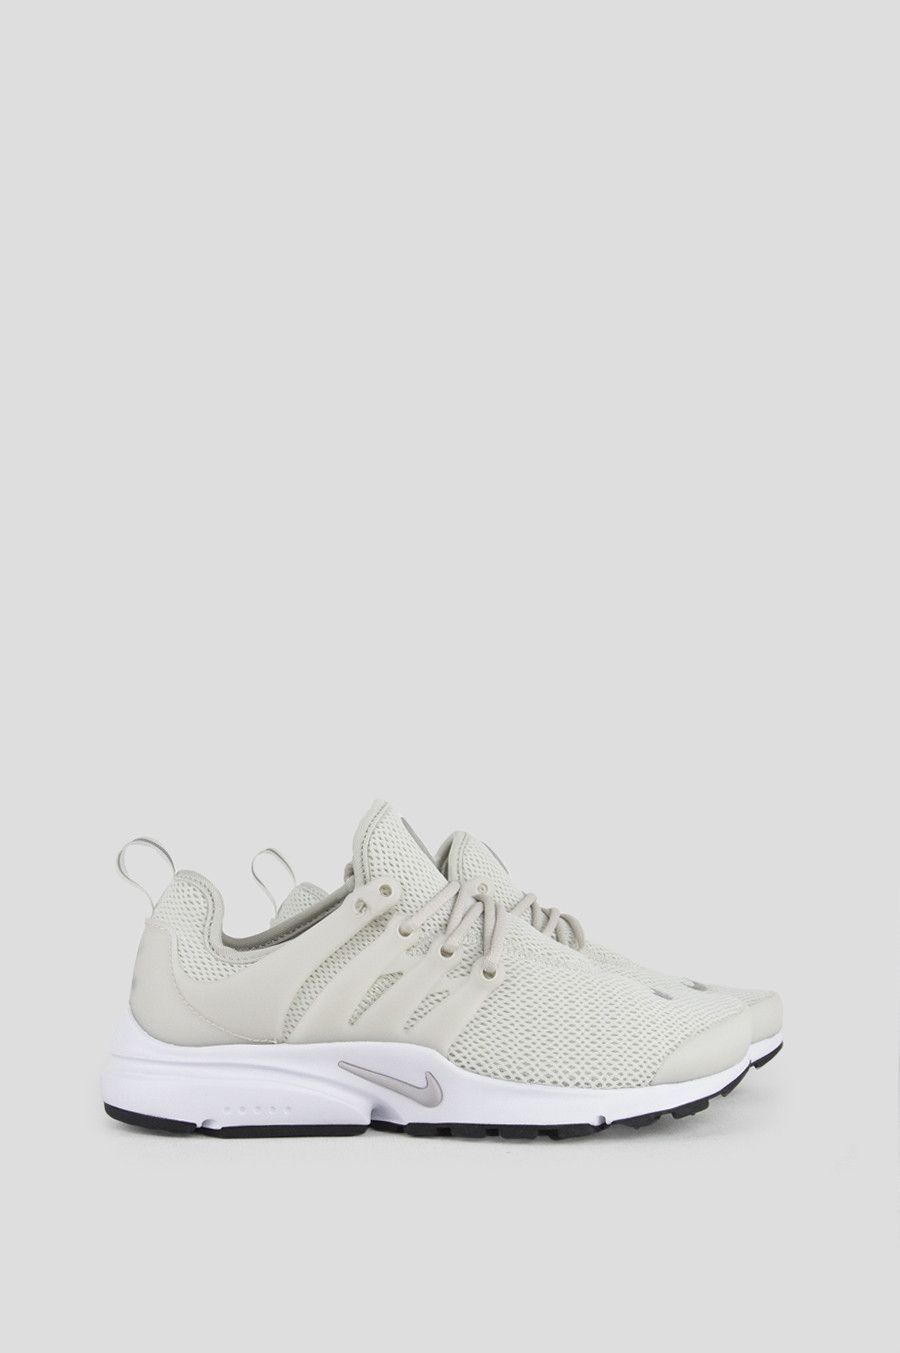 b70a697d6caa The Nike Air Presto Women s Shoe is inspired by the comfort and minimalism  of a classic T-shirt for lightweight everyday comfort. - Product Code   878068-002 ...